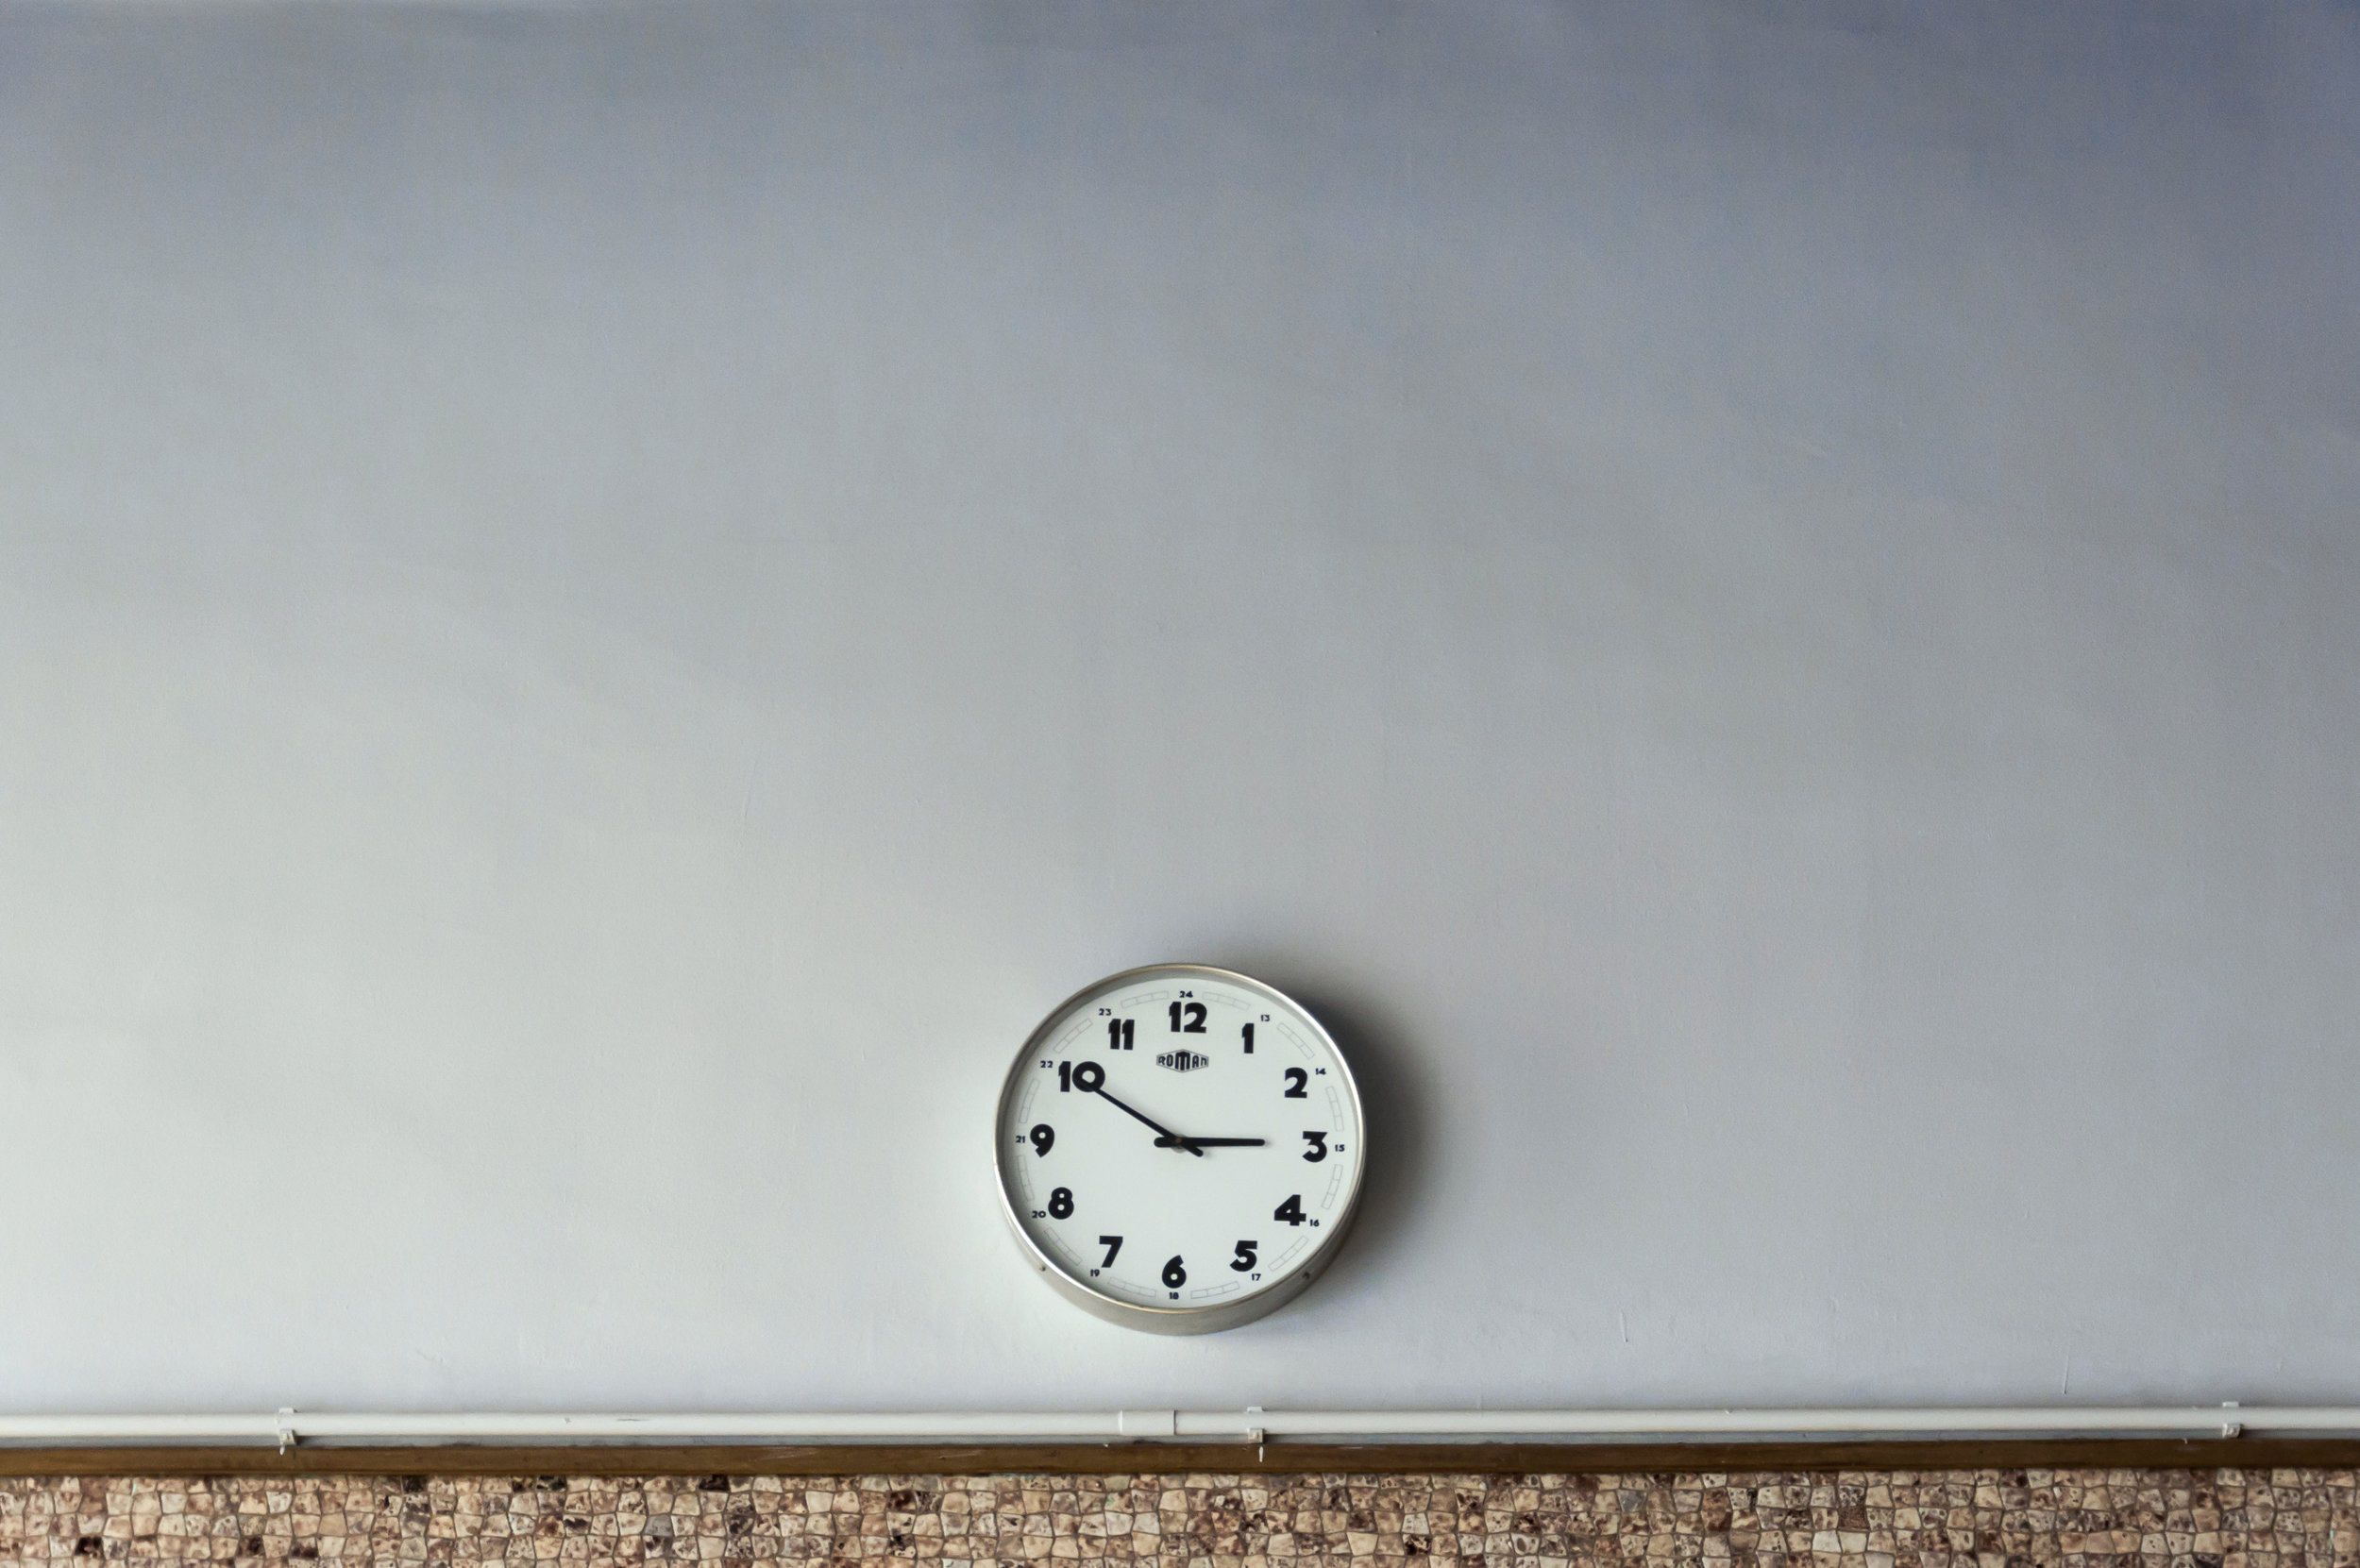 THE PROBLEM WITH TRACKING YOUR EMPLOYEES' TIME - By Peter Benei